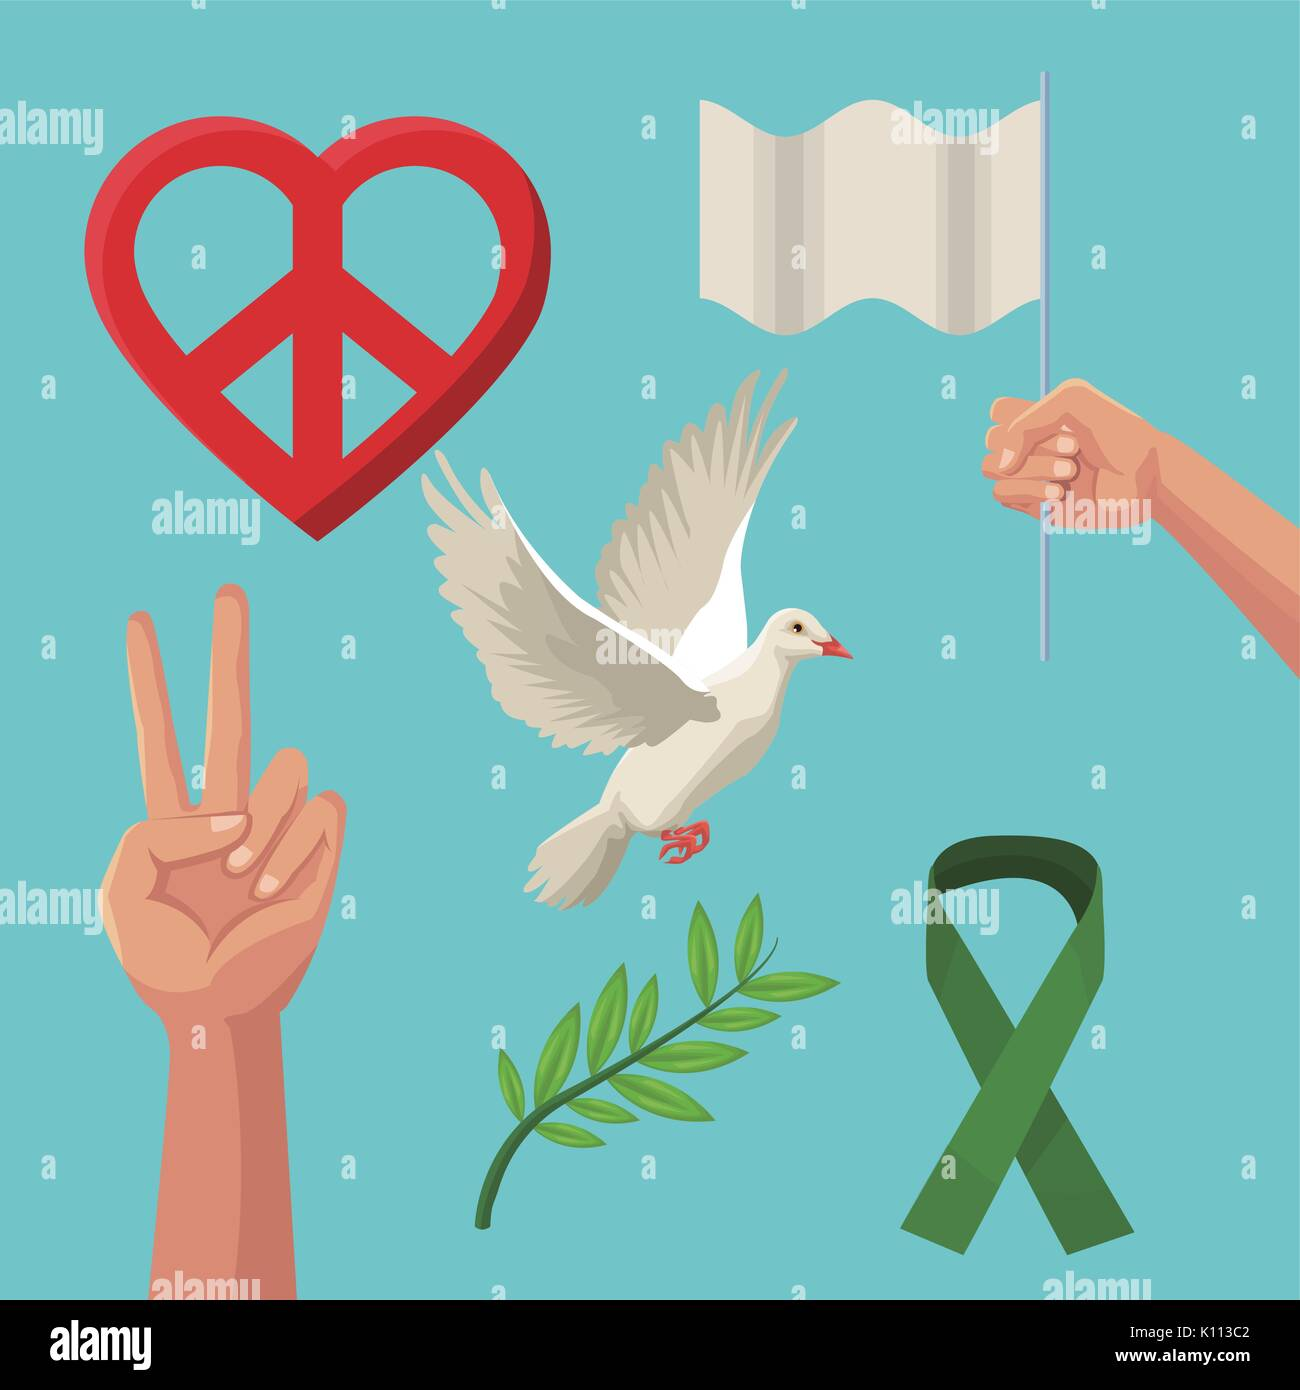 Color poster icons of peace and love symbols stock vector art color poster icons of peace and love symbols biocorpaavc Images